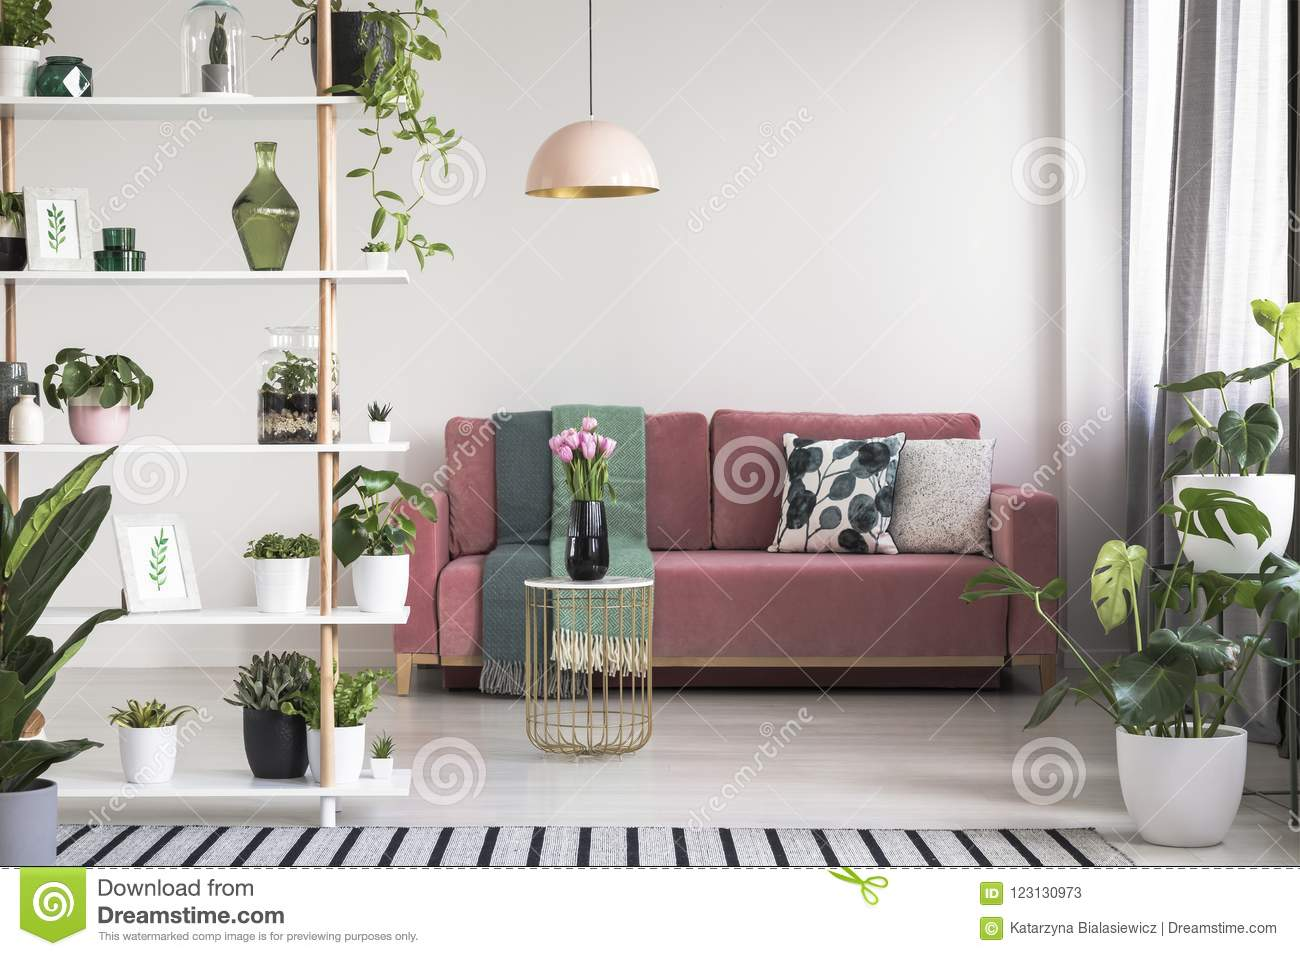 Interio Sofa Marilyn Lamp Above Table With Flowers In Front Of Red Sofa In White Living